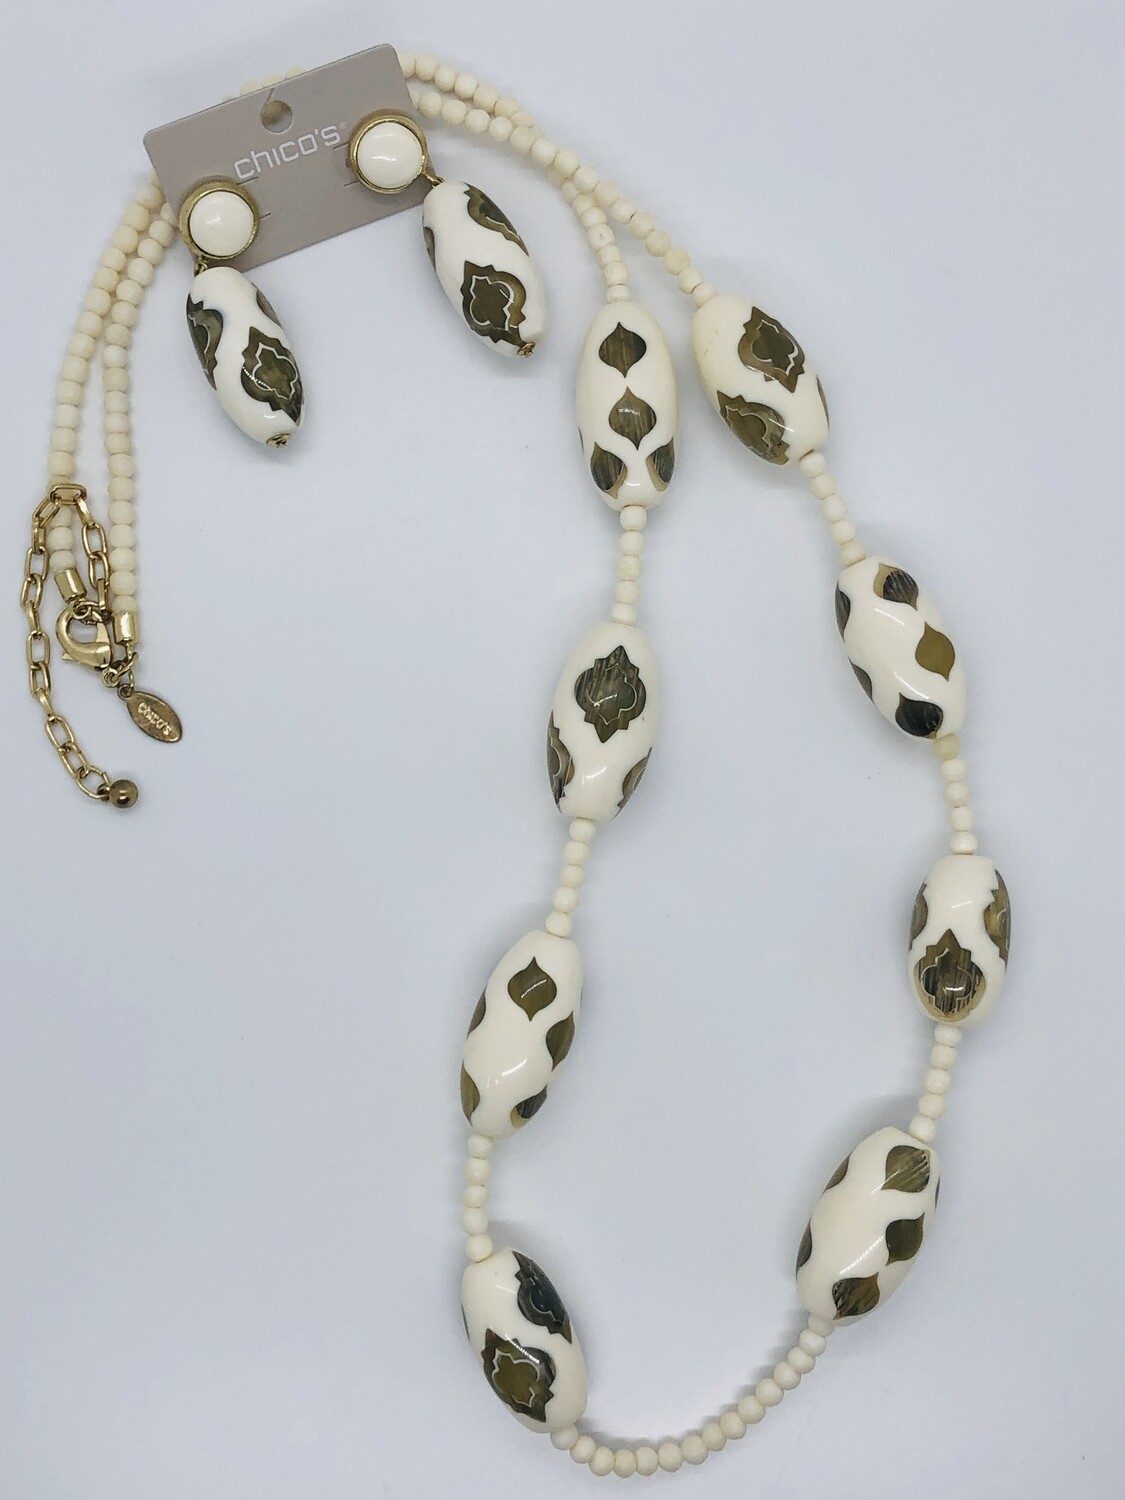 CHICOS Ivory Beaded Design Necklace & Earring Set